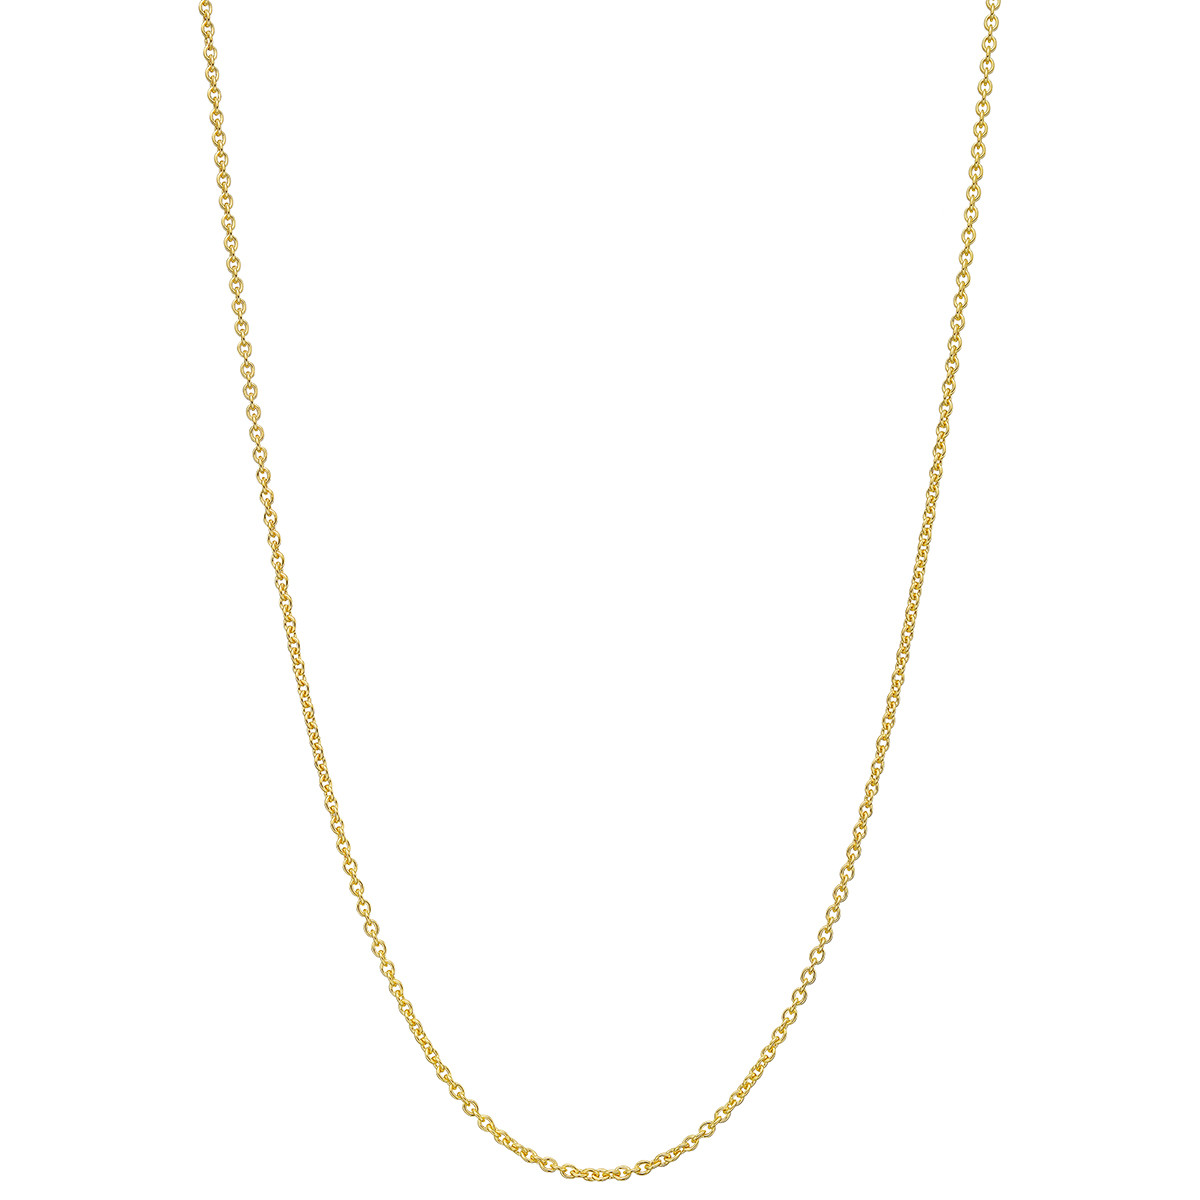 "18k Yellow Gold Thin Round Link Chain Necklace (16"")"